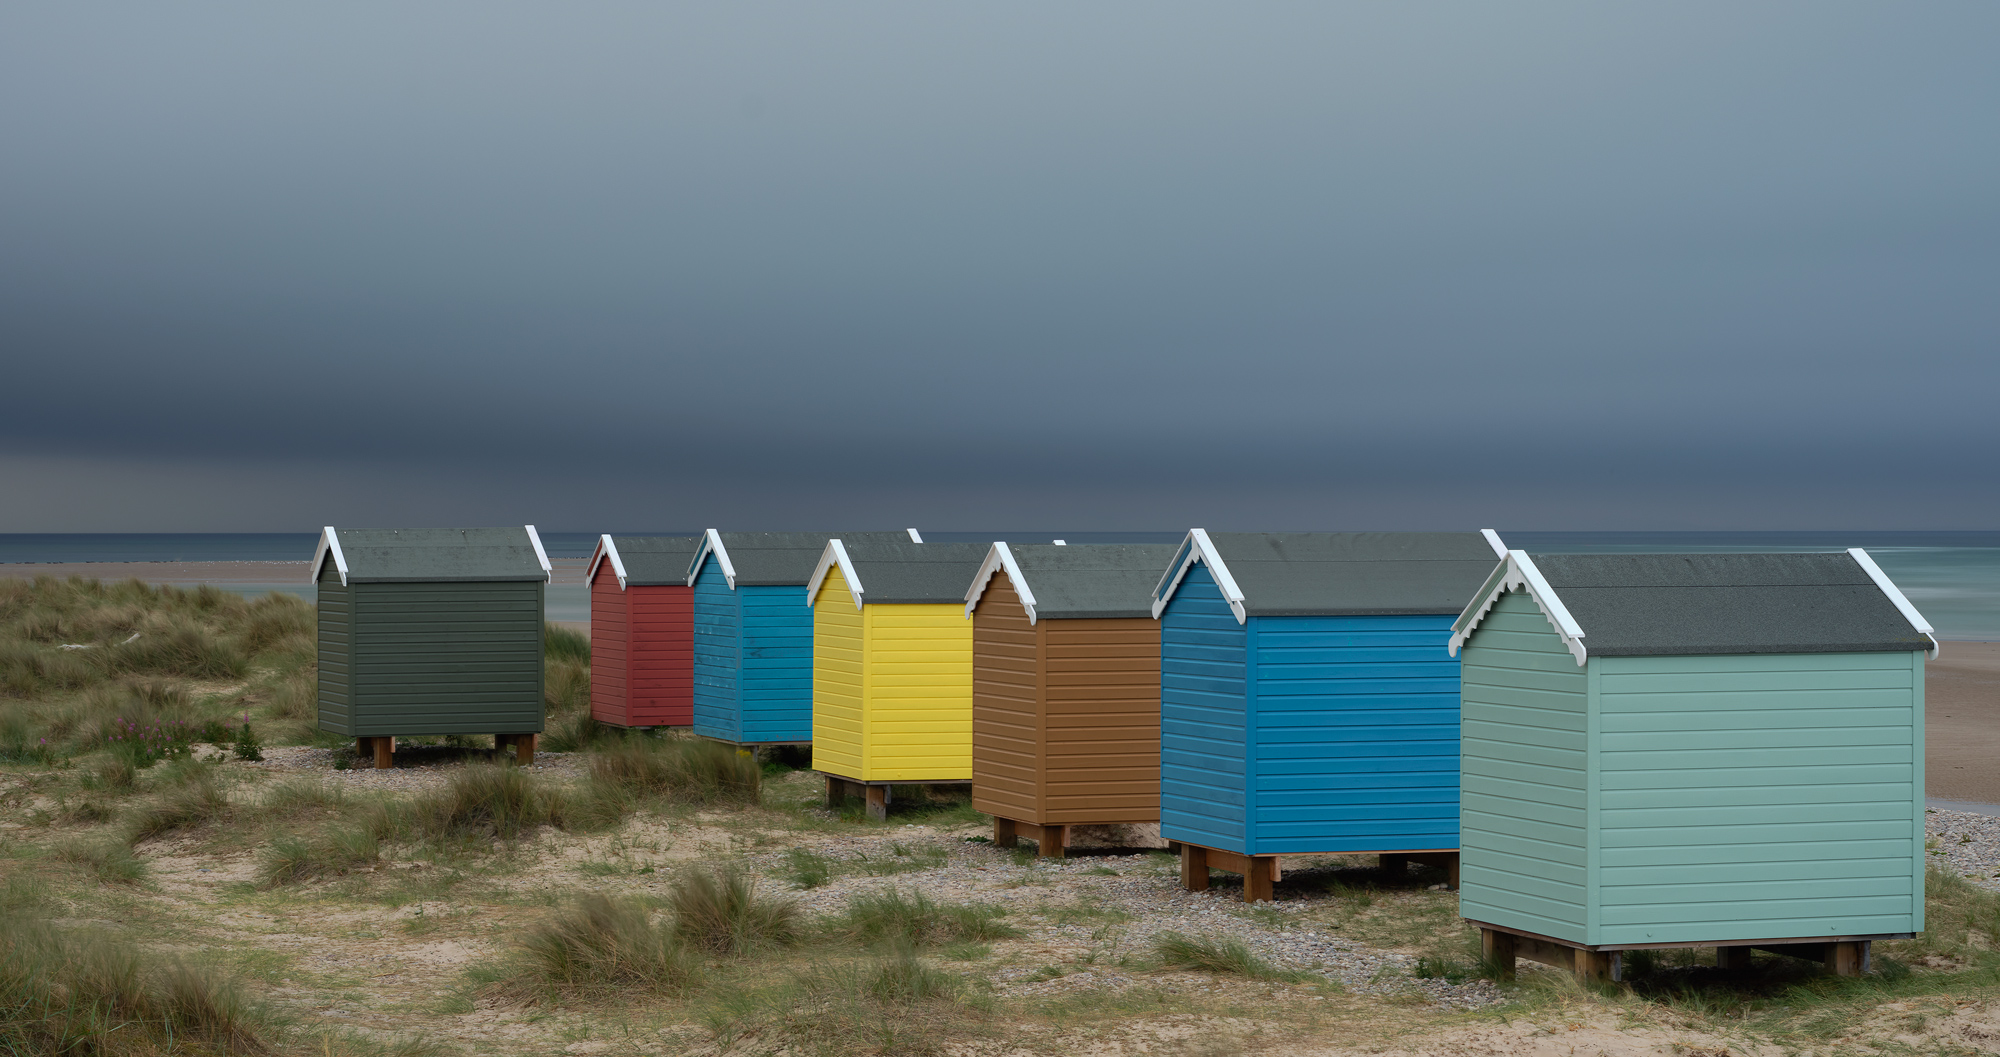 Cheerful beach huts in rainbow painted colours offer a bizarre juxtaposition to the forthcoming deluge about to hit Findhorn Bay.